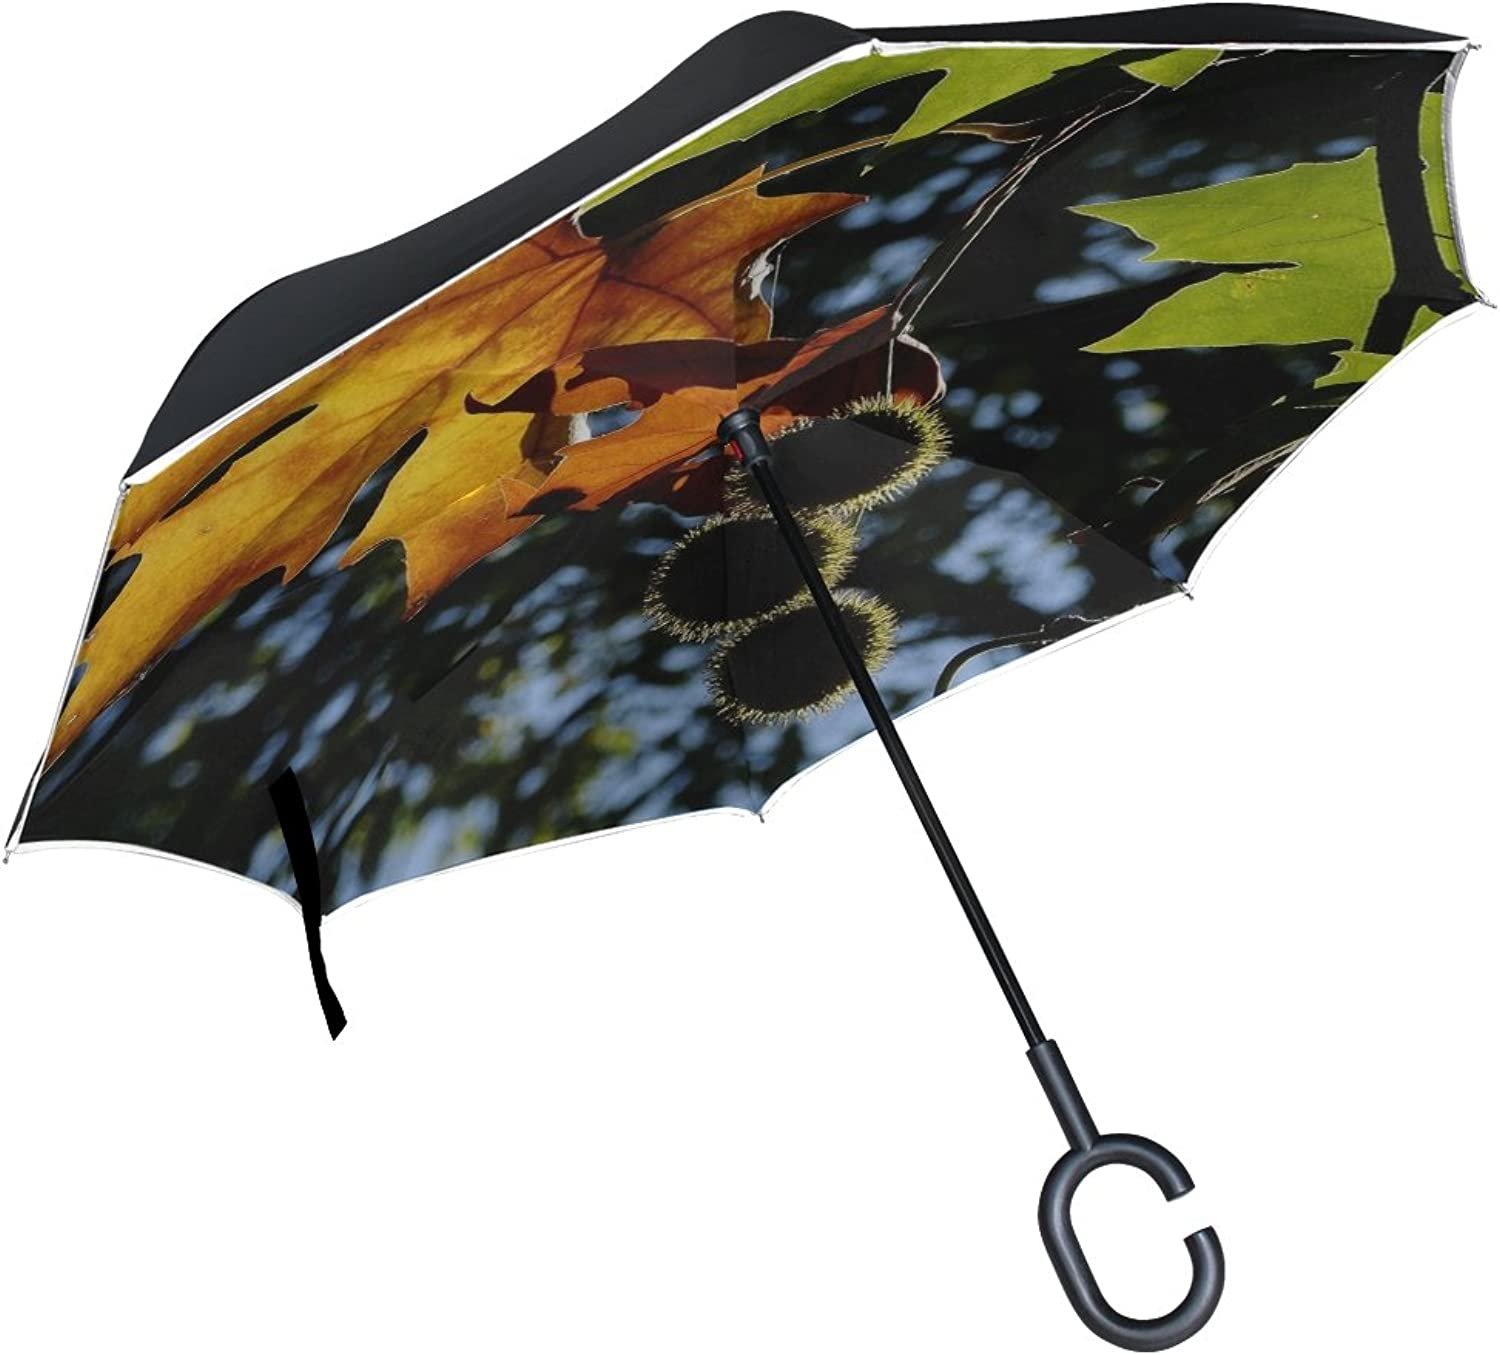 Double Layer Ingreened Leaf Fall Autumn Leaf Autumn Leaves Leaves Nature Umbrellas Reverse Folding Umbrella Windproof Uv Predection Big Straight Umbrella for Car Rain Outdoor with CShaped Handle